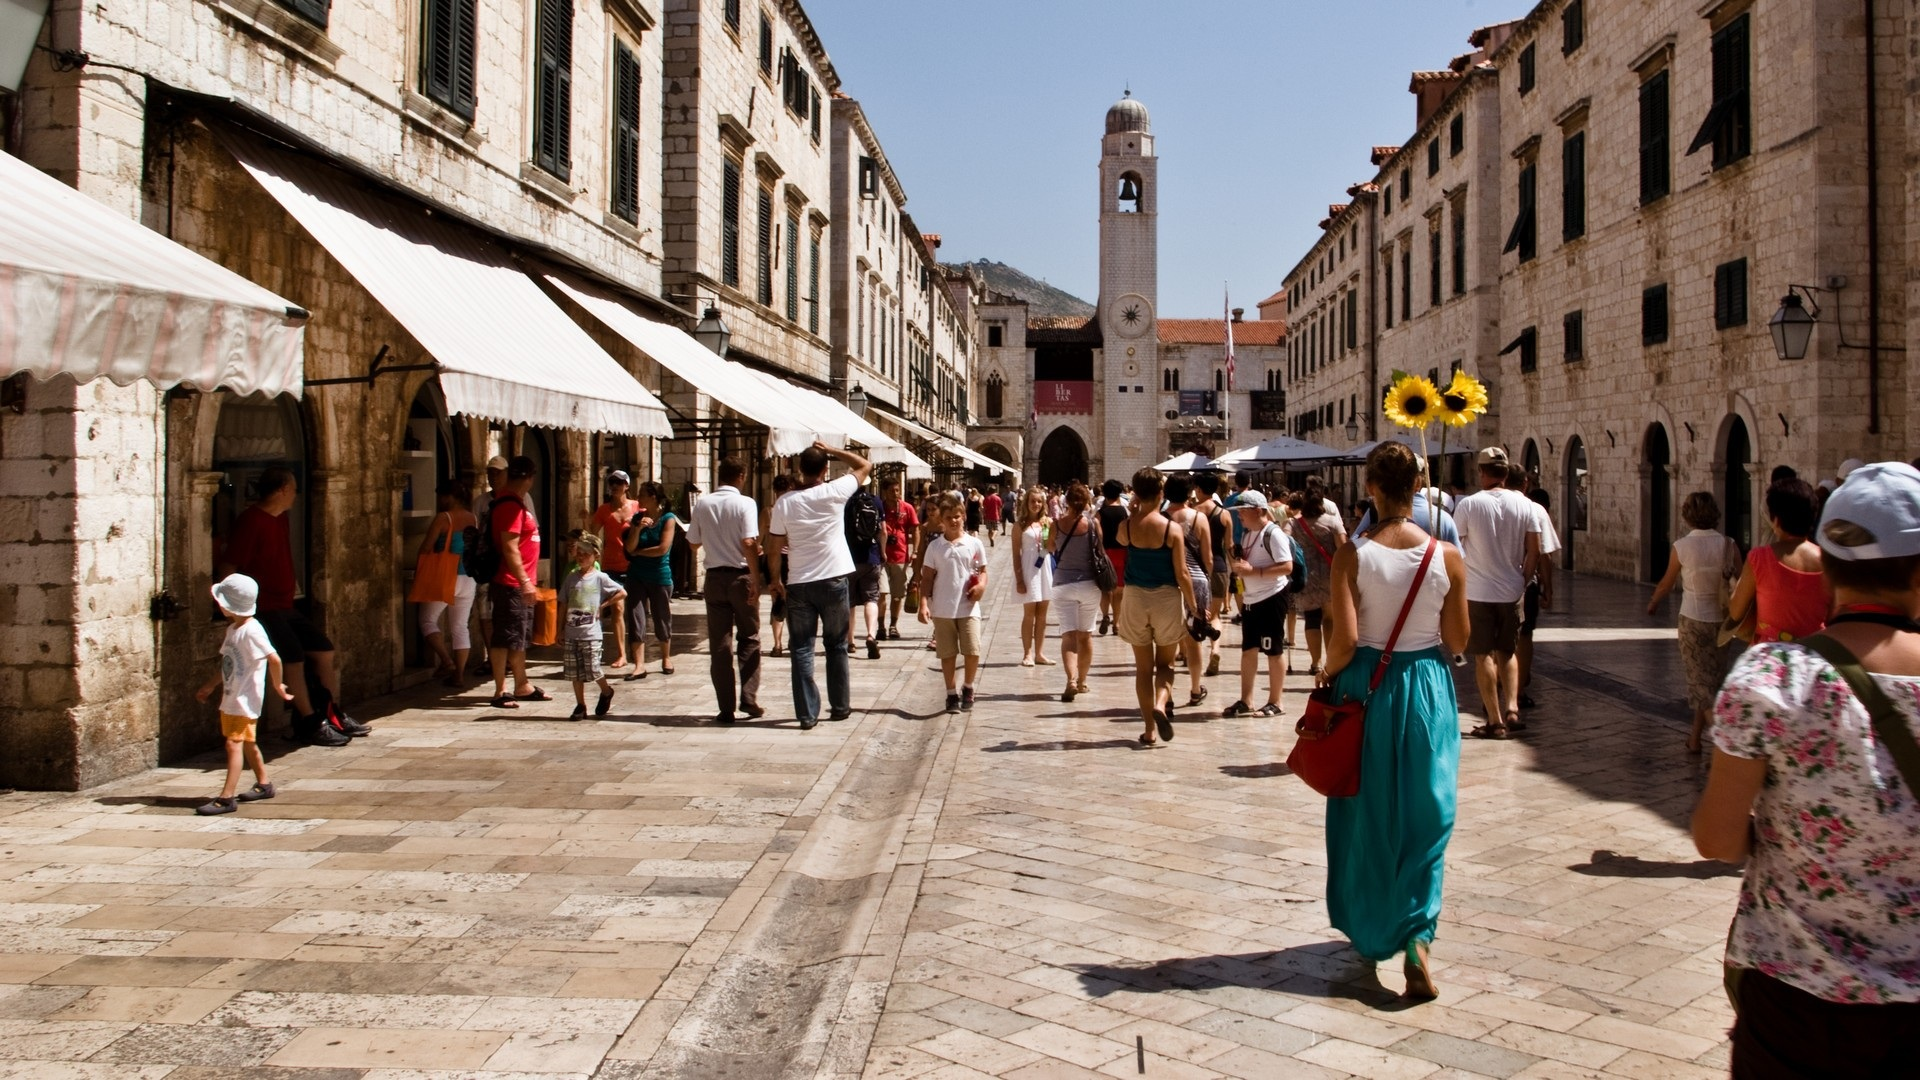 Discover dubrovnik old town guided walking tour - Discover The Old Town Tour From 14 Per Person 1 Es Descubra El Casco Viejo 14 Por Persona